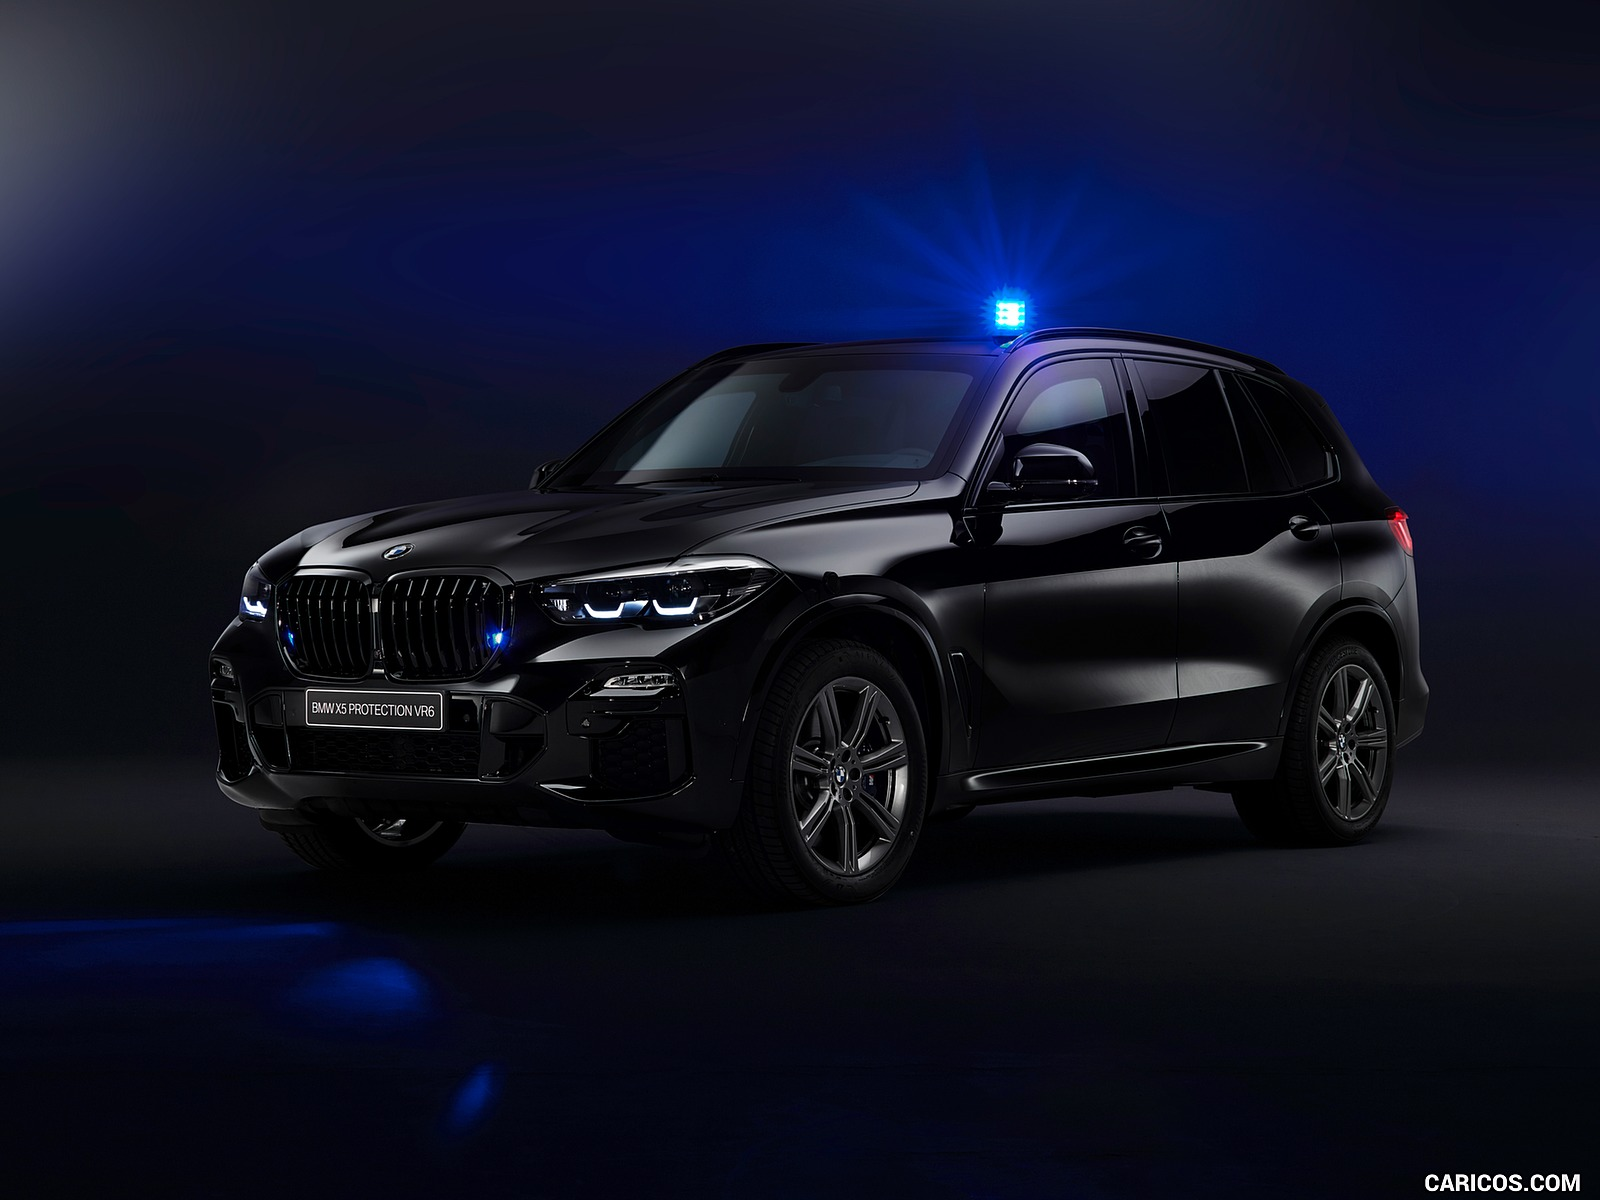 2020 BMW X5 Protection VR6 Armored Vehicle   Front Three Quarter 1600x1200